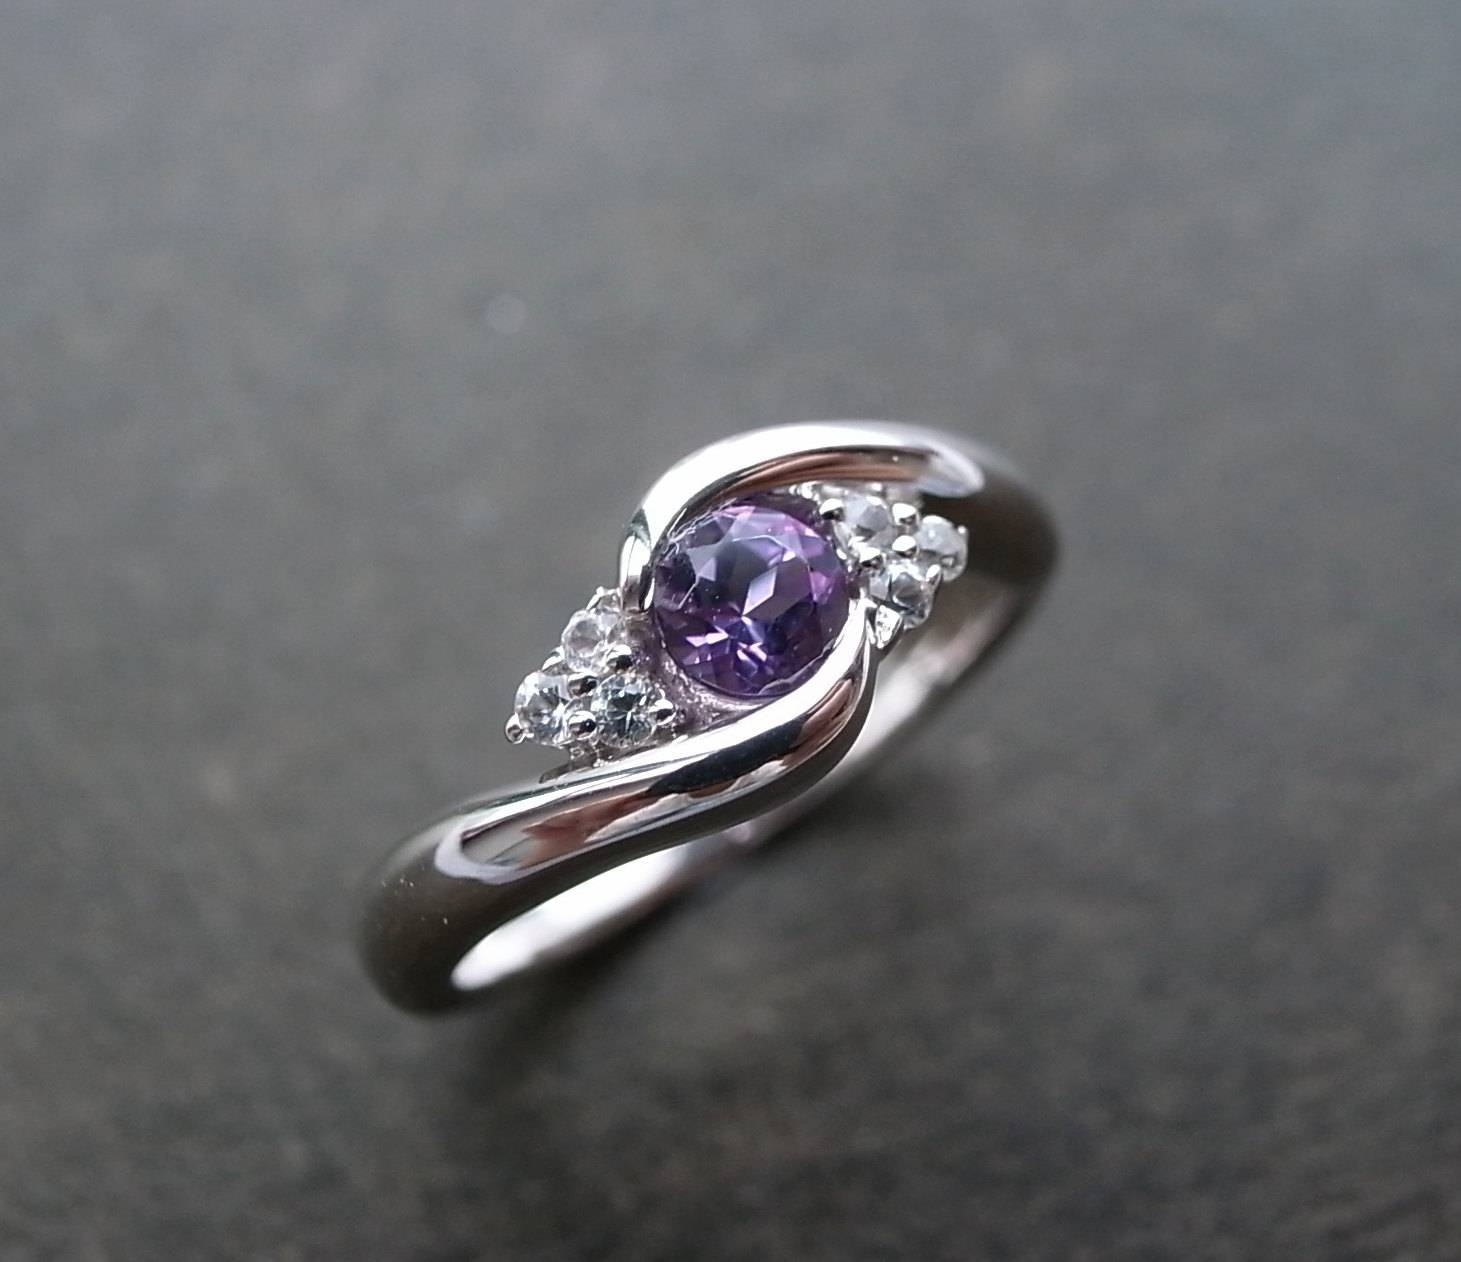 Wedding Ring With Amethyst And White Sapphire In 14k White Gold On Within Wedding Rings With Amethyst (View 7 of 15)